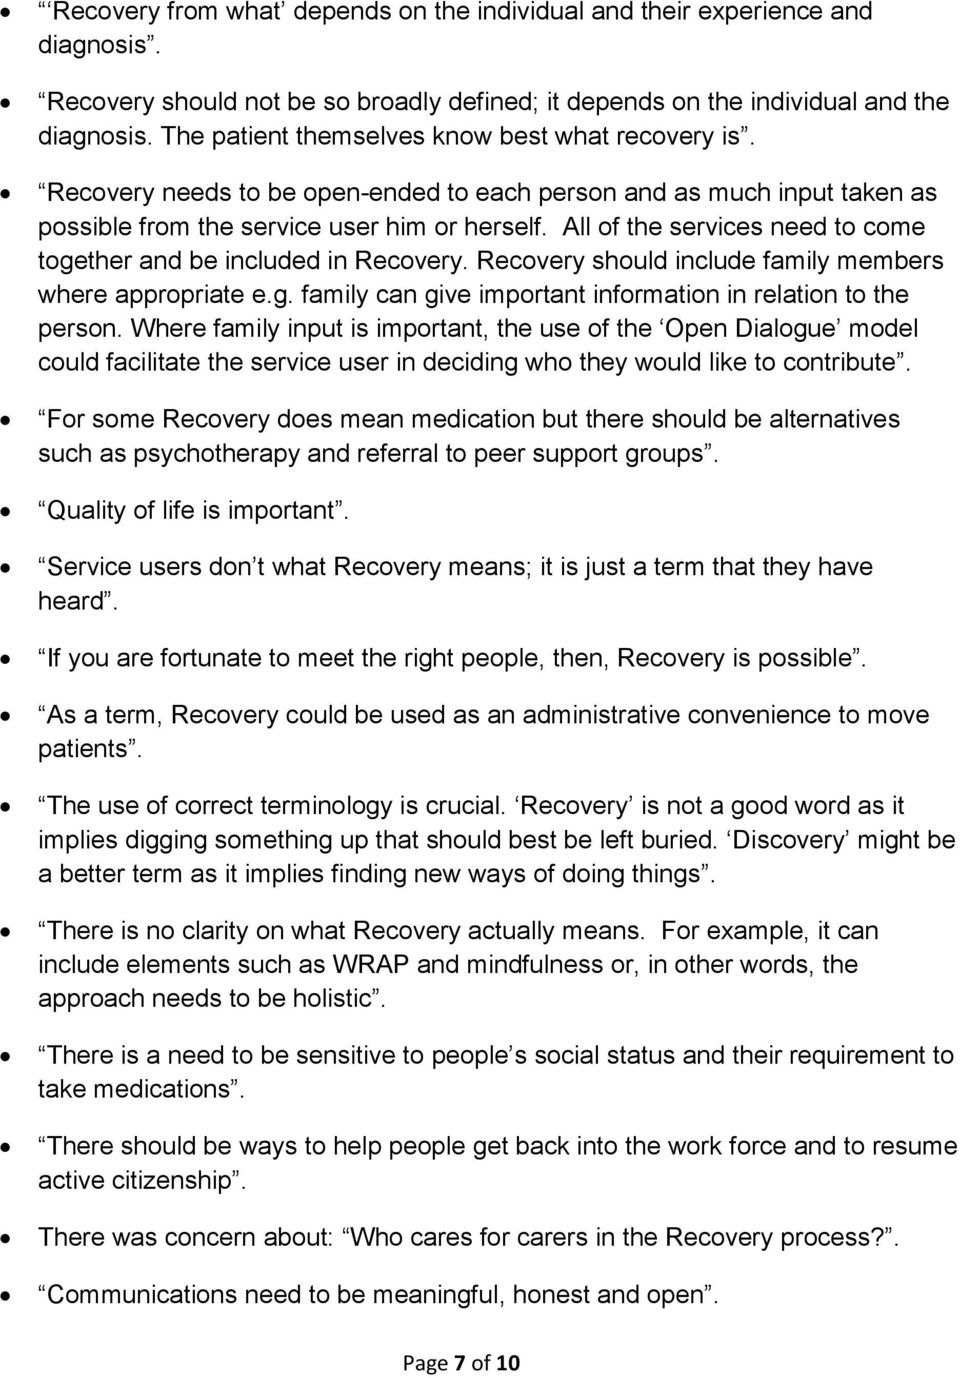 All of the services need to come together and be included in Recovery. Recovery should include family members where appropriate e.g. family can give important information in relation to the person.